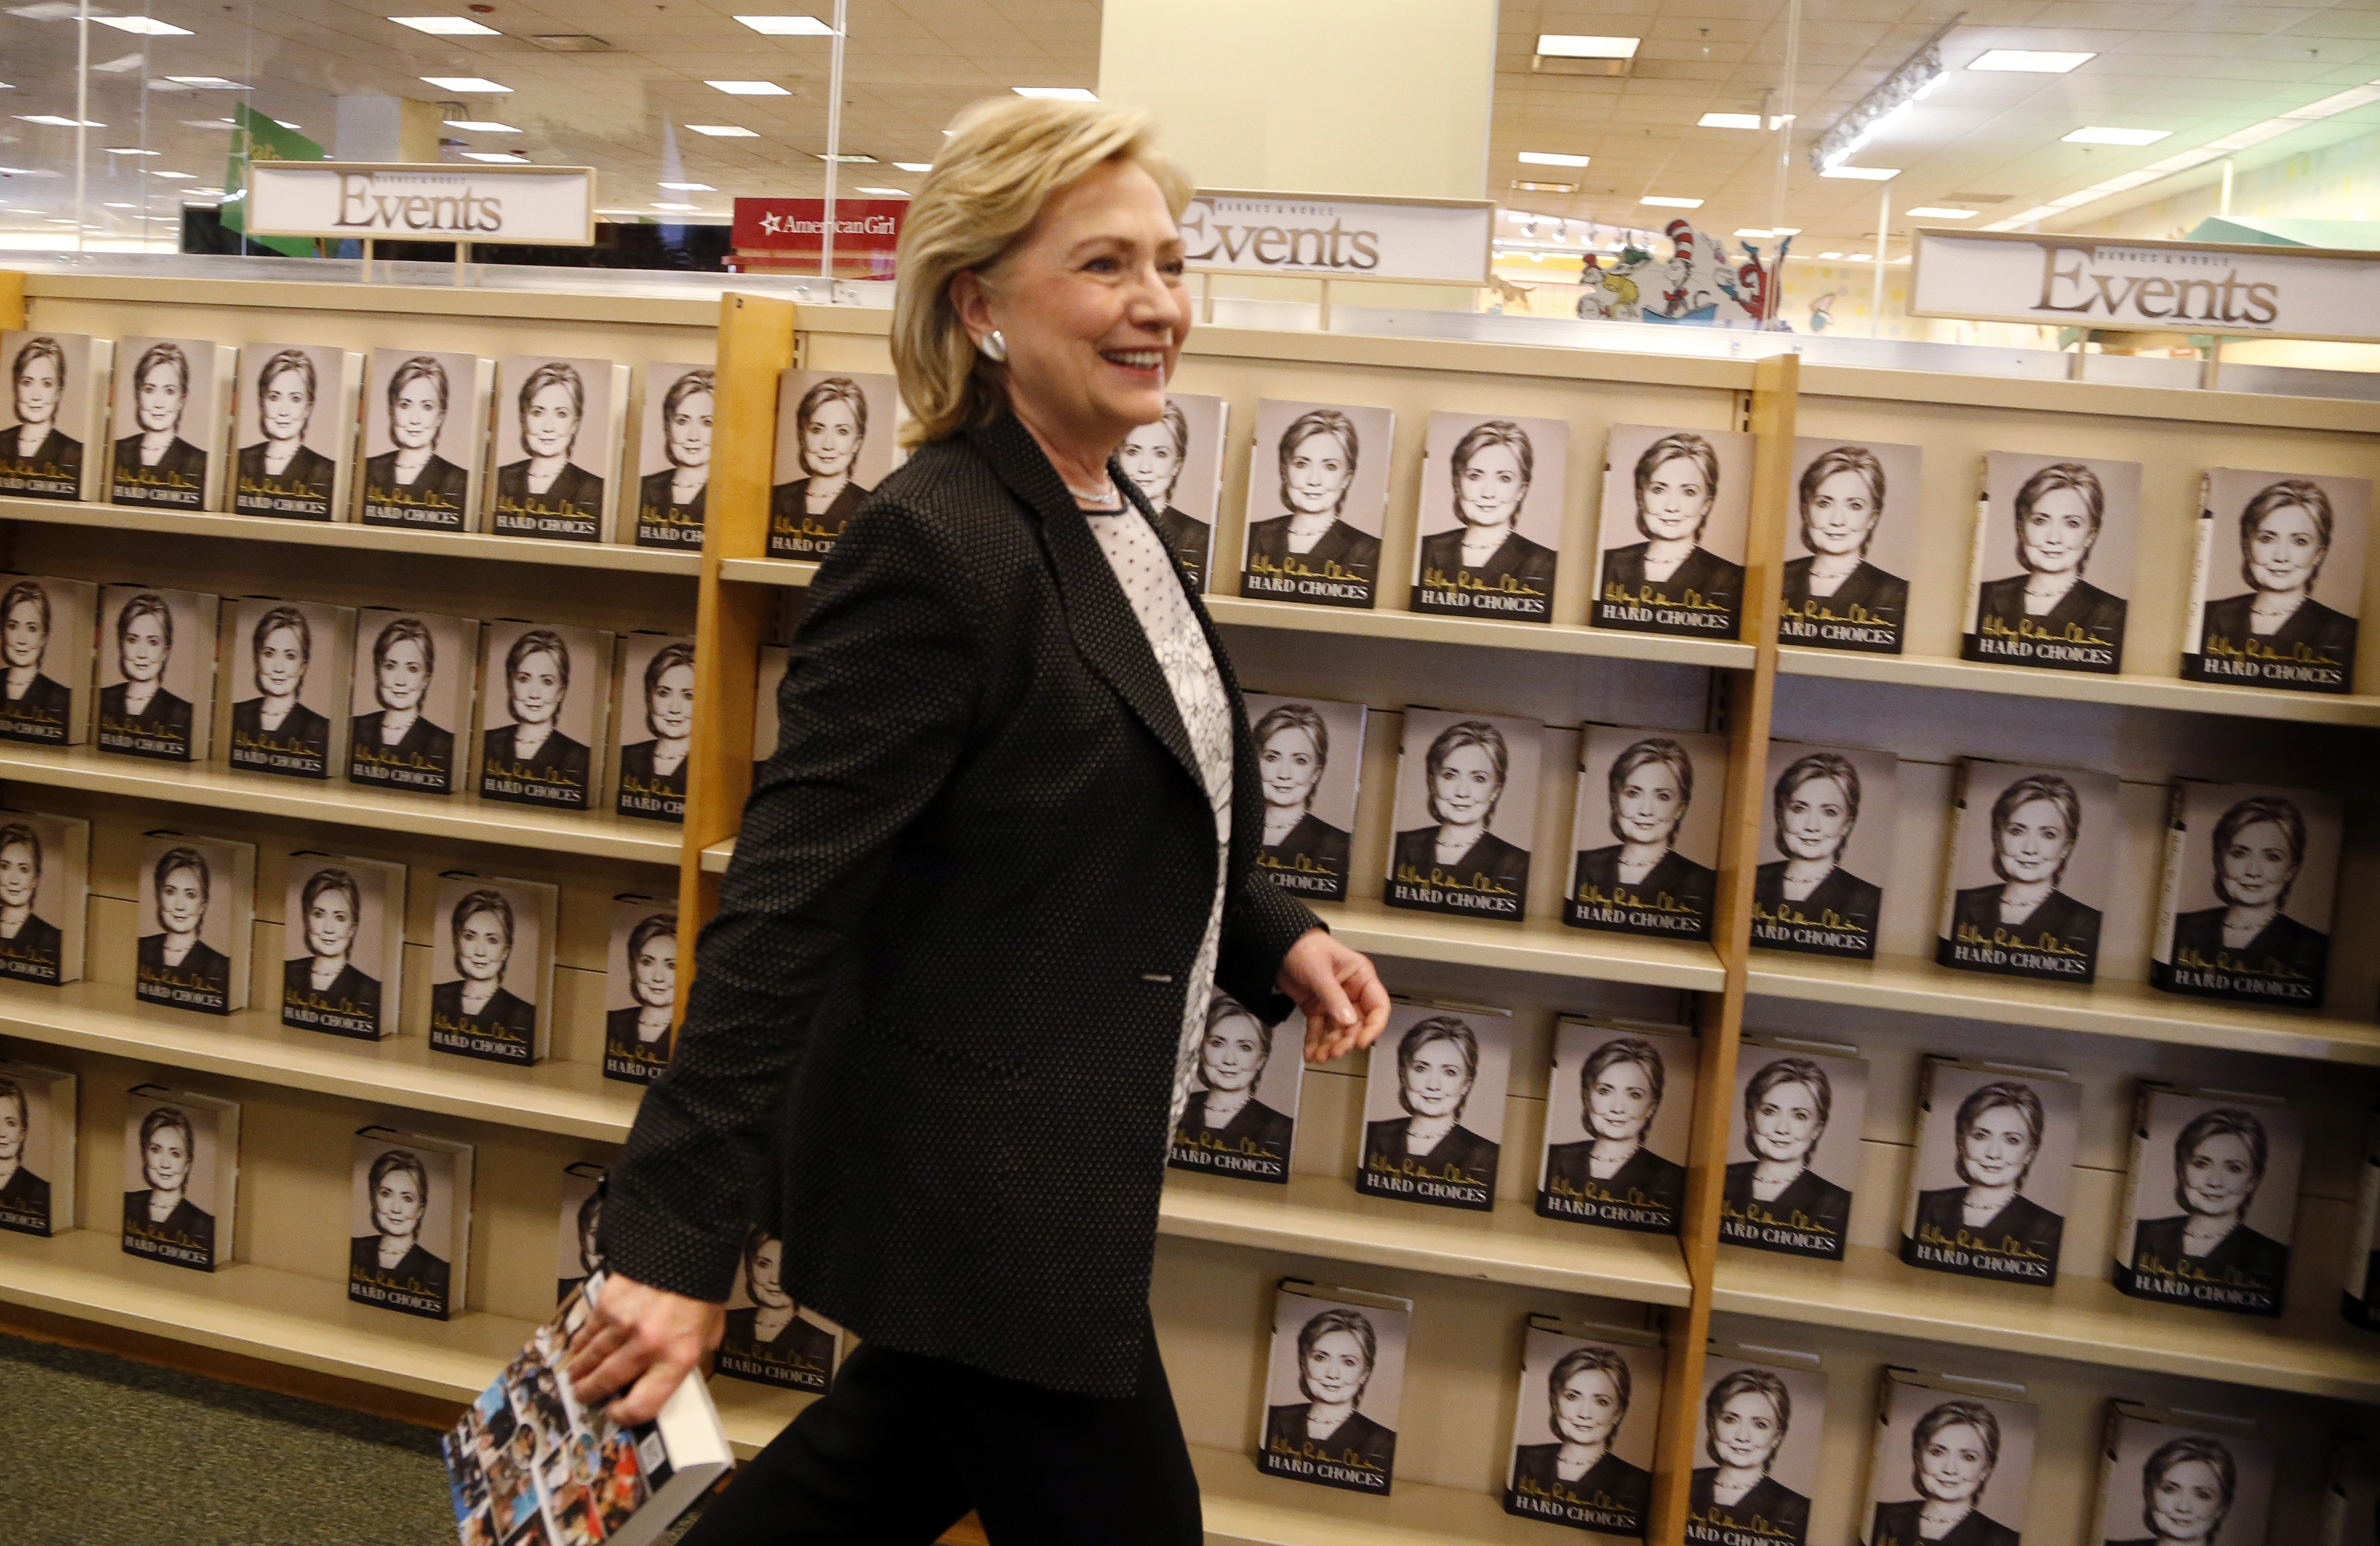 Former U.S. Secretary of State Hillary Clinton arrives to sign copies of her book  Hard Choices  at a Barnes & Noble book store in Los Angeles, California on June 19, 2014.